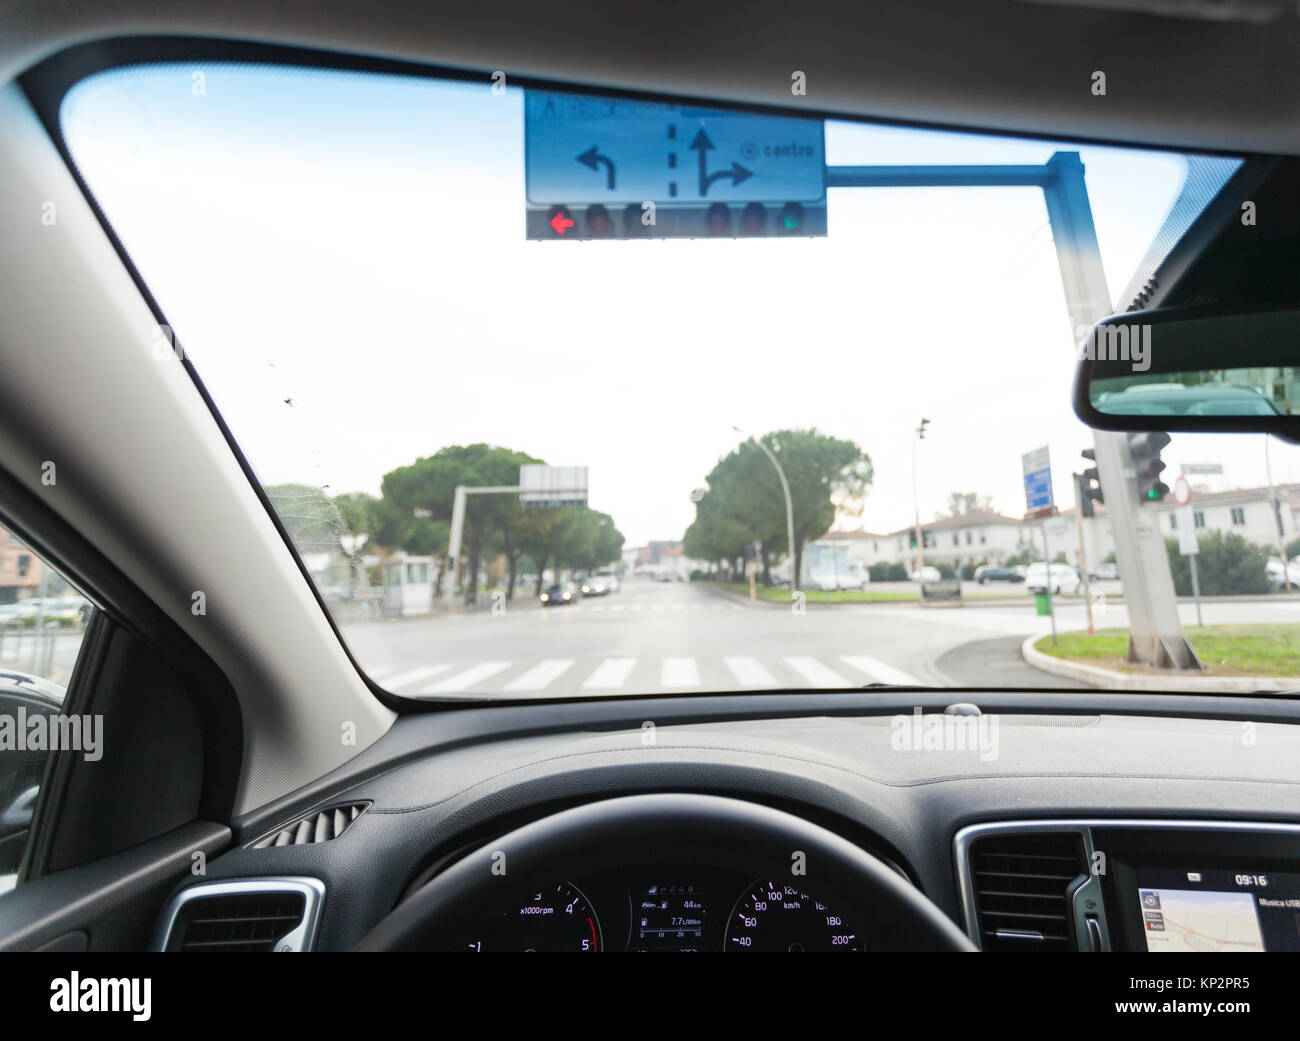 View from inside a car on a part of dashboard with a navigation unit. - Stock Image